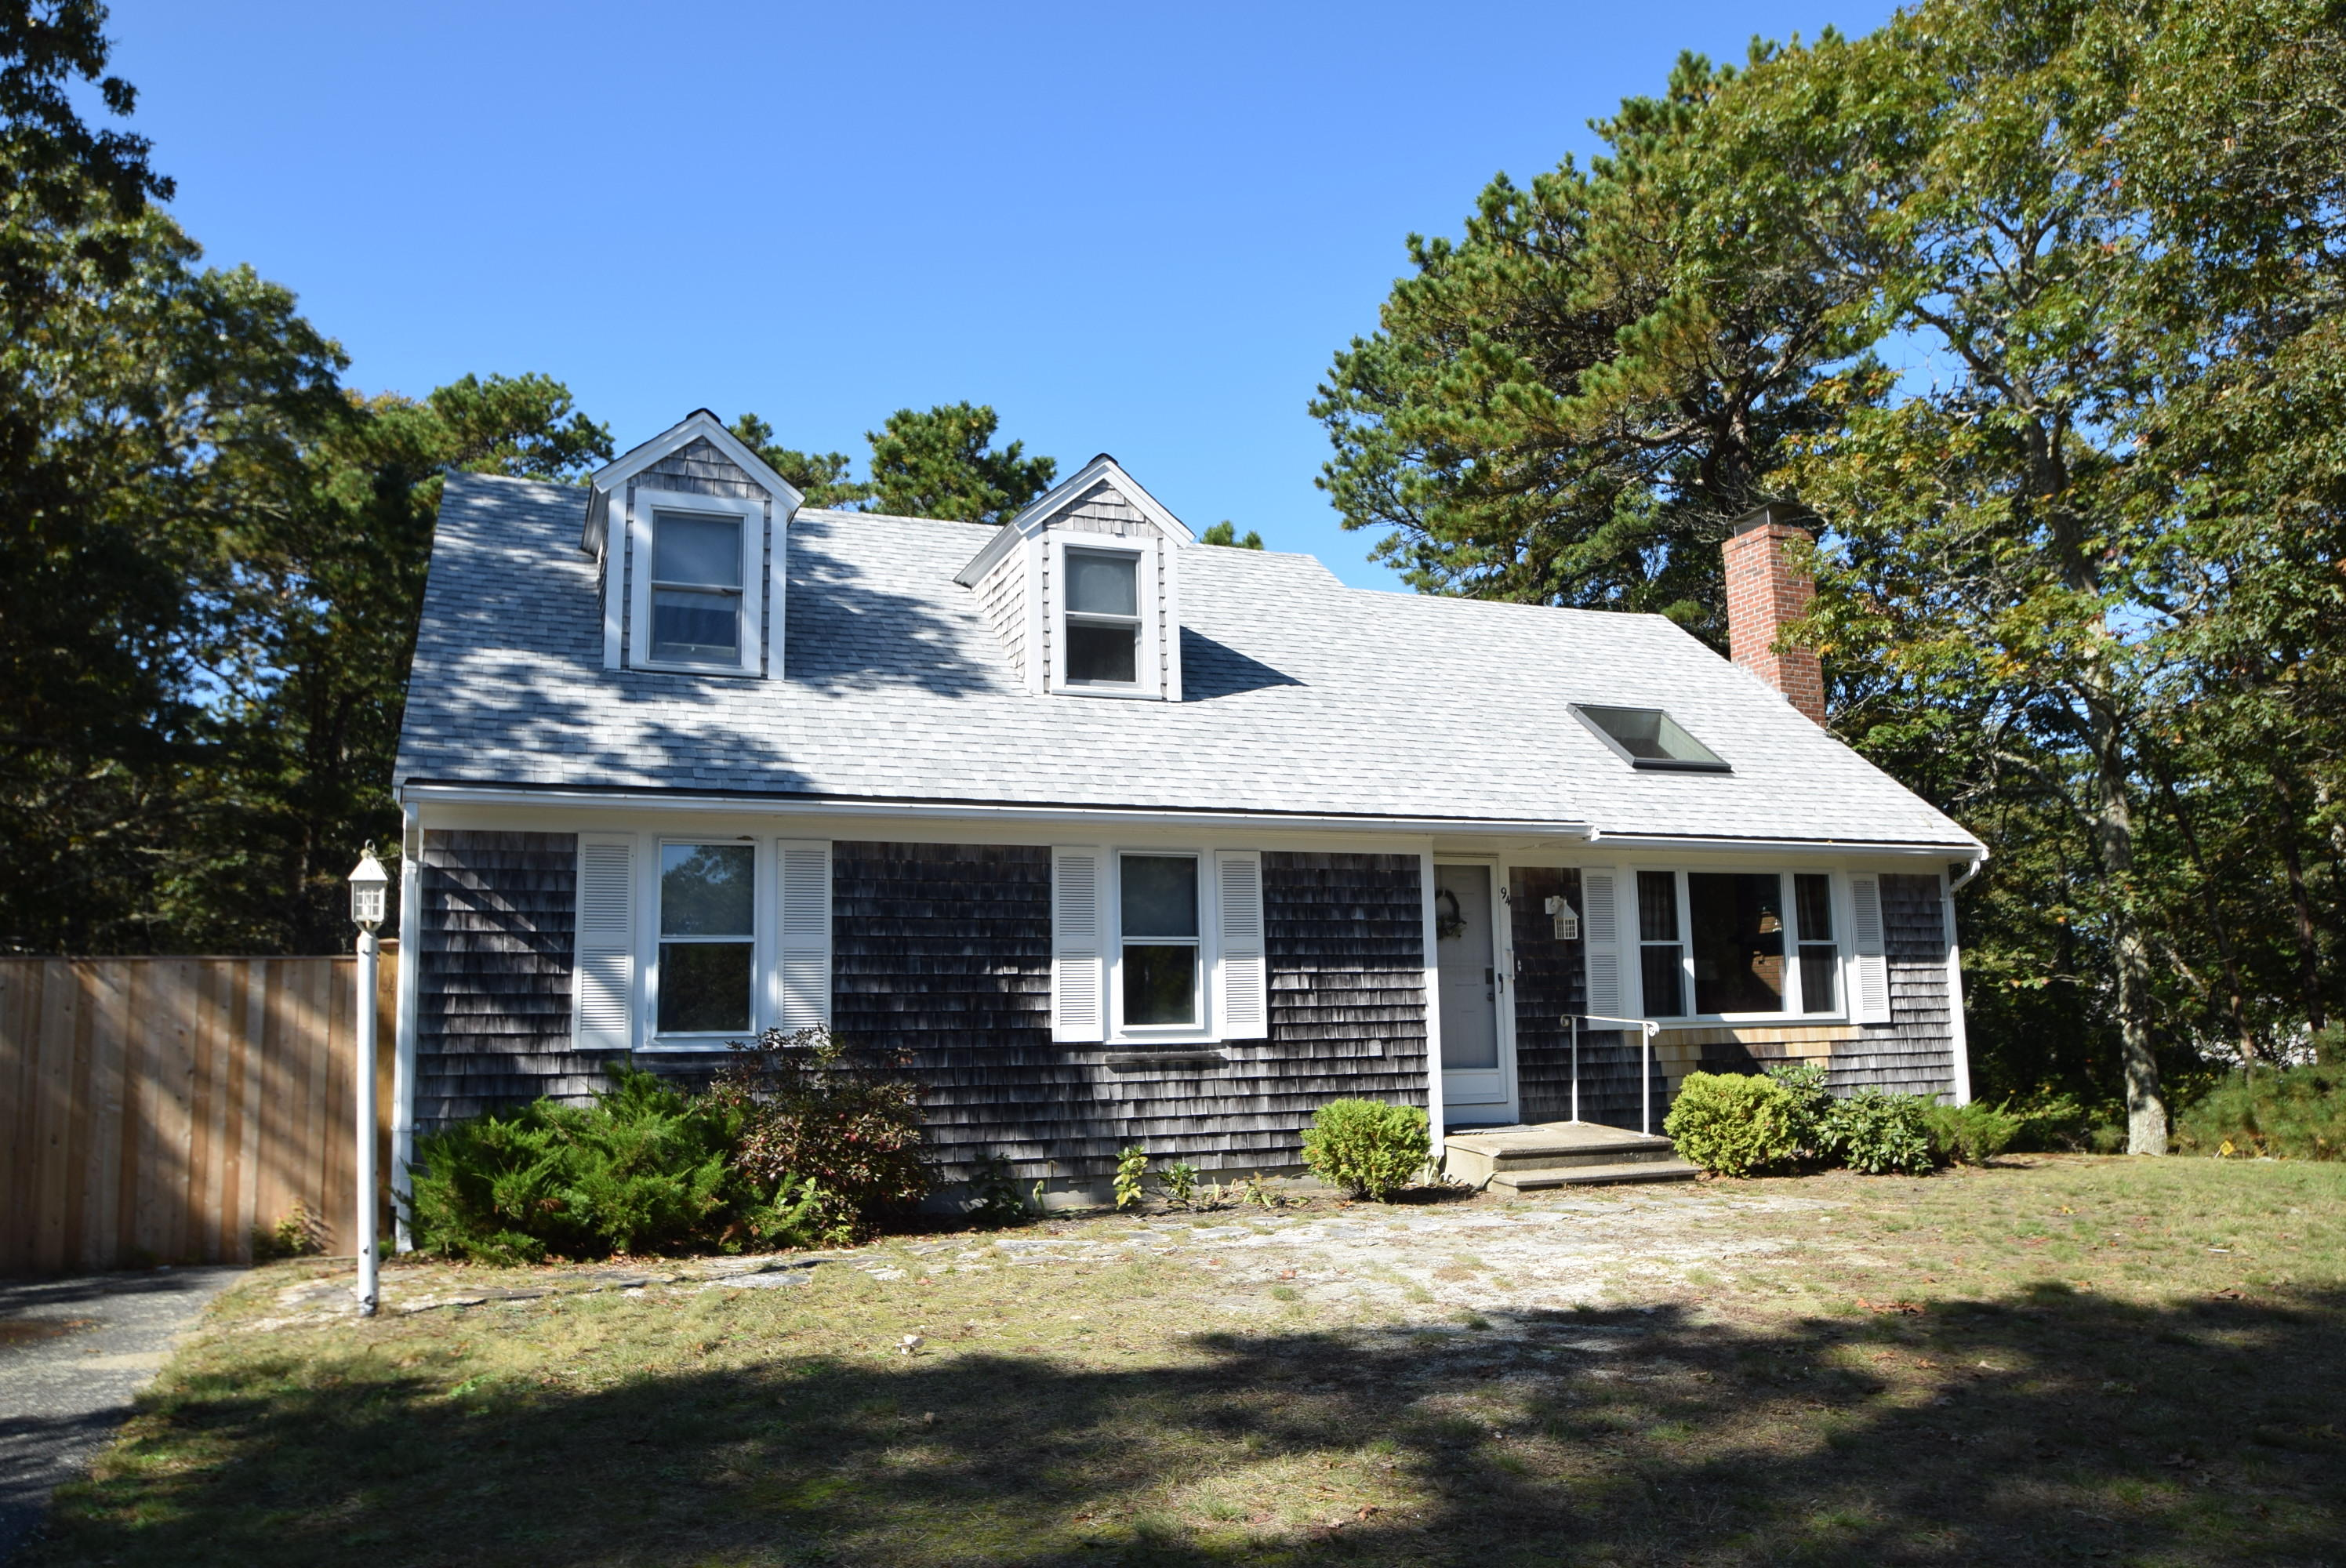 94 Pine View Drive, Brewster MA, 02631 sales details